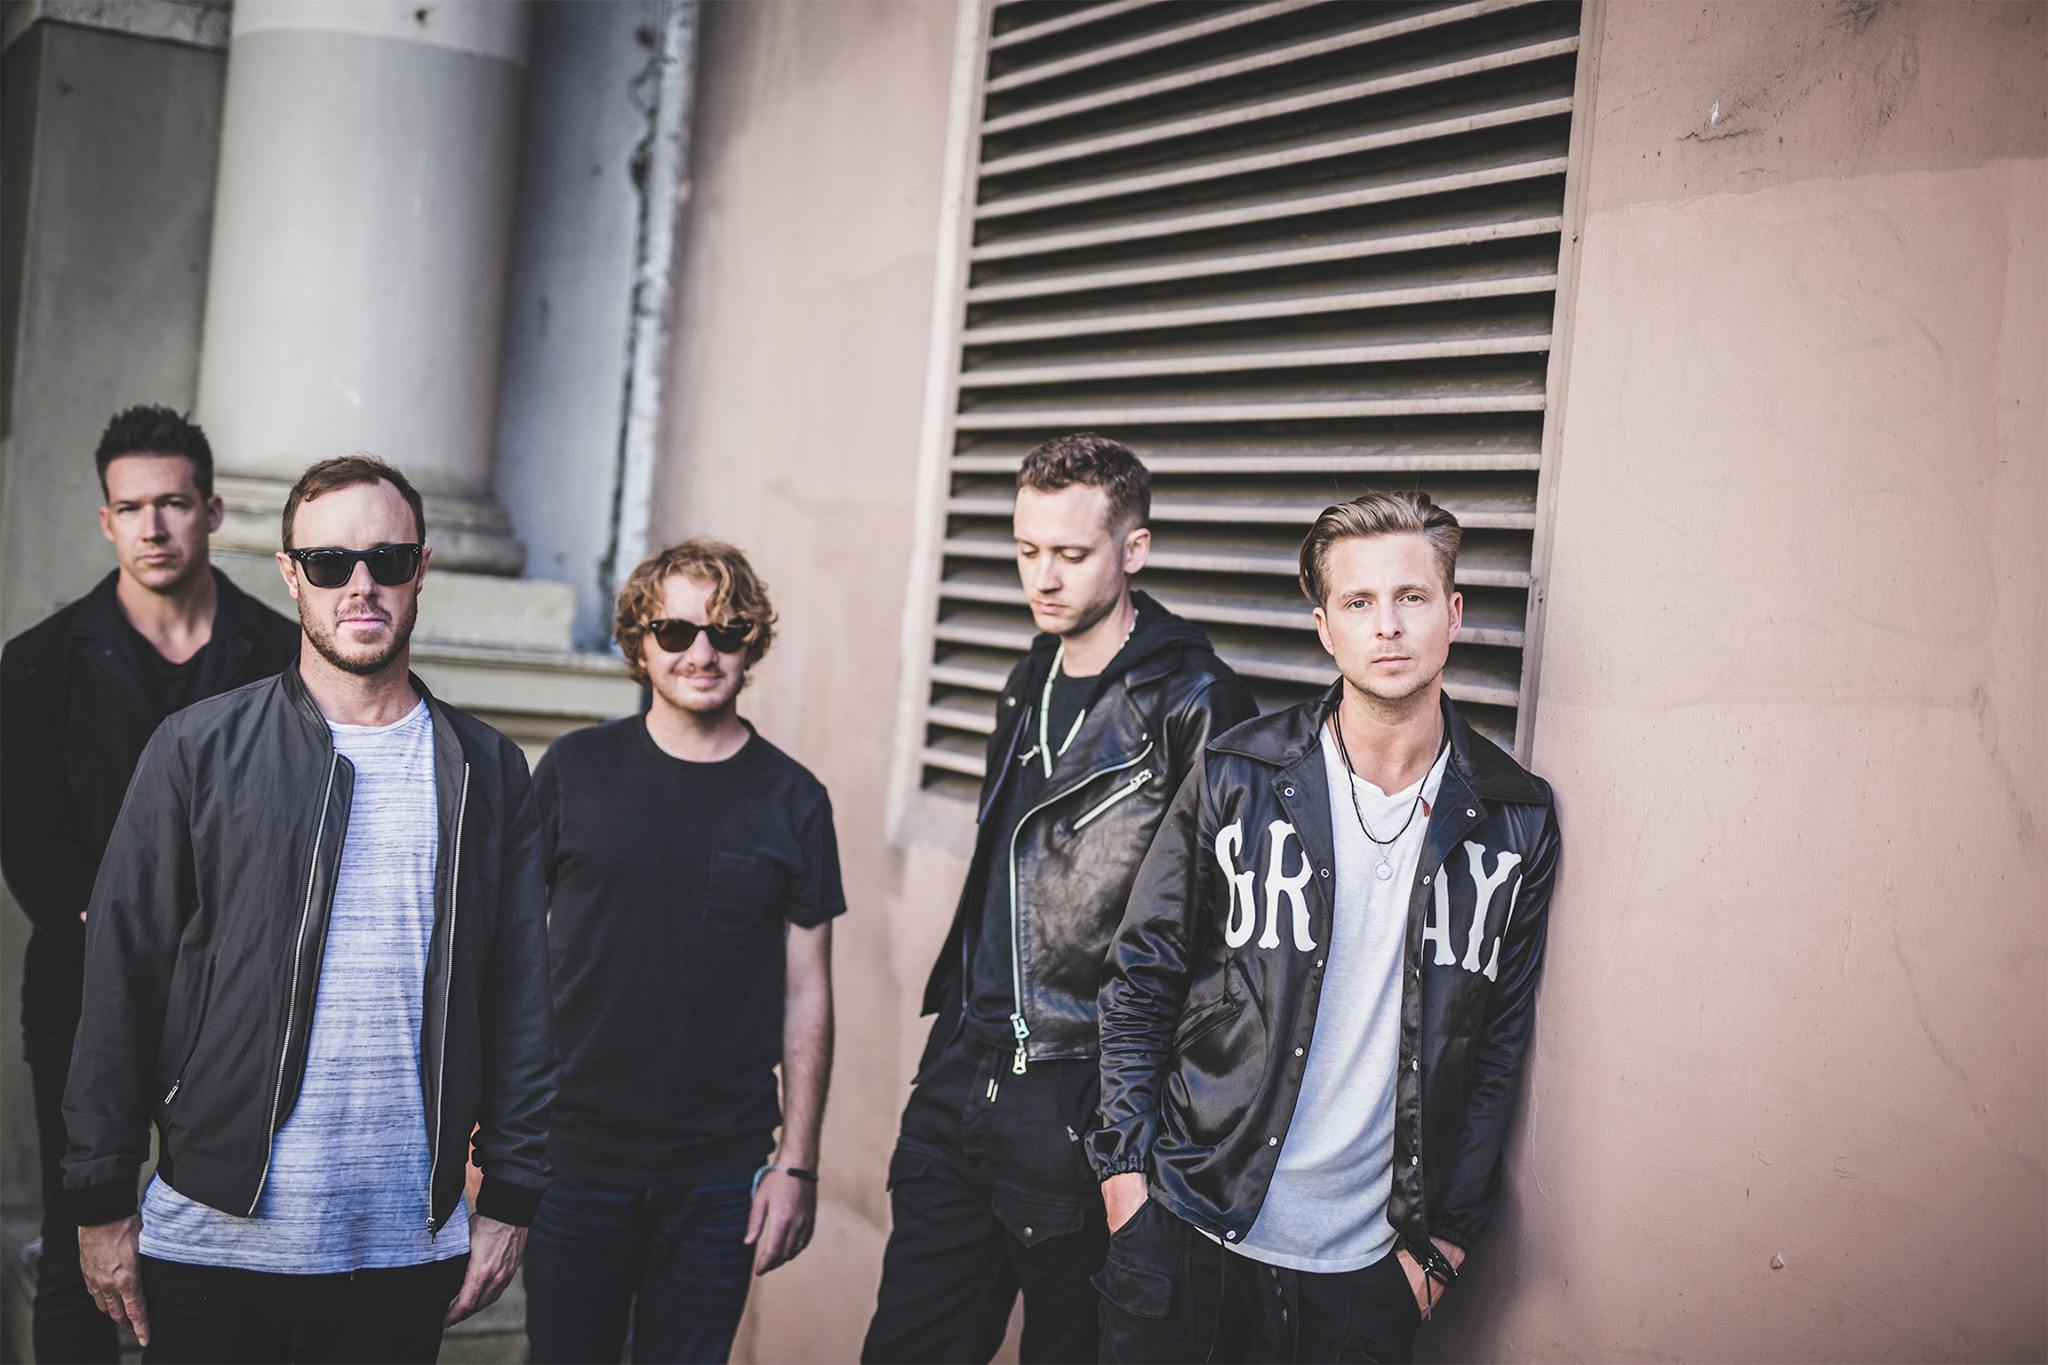 OneRepublic will perform at Darien Lake in the summer of 2017.